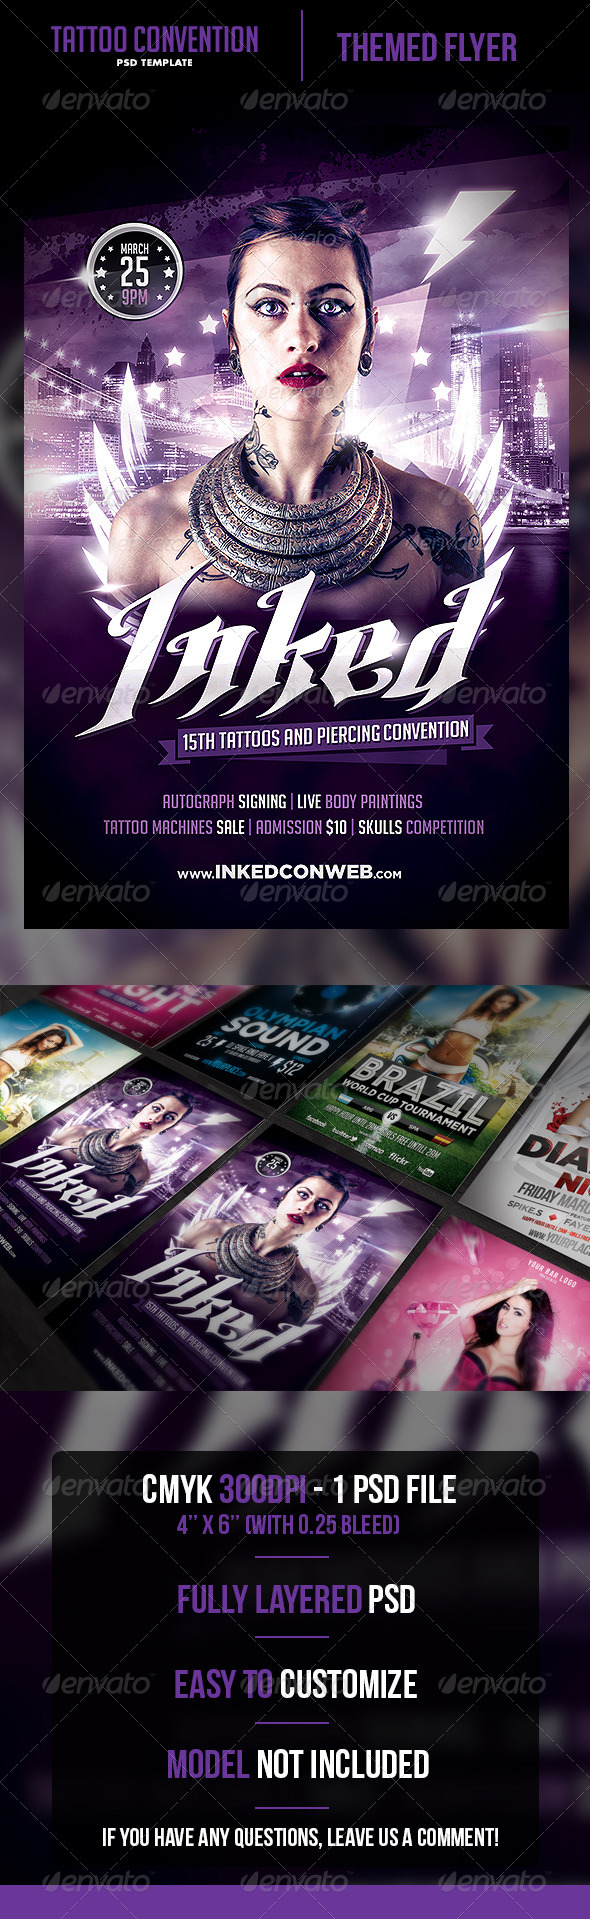 Tattoo Convention Flyer Template - Clubs & Parties Events